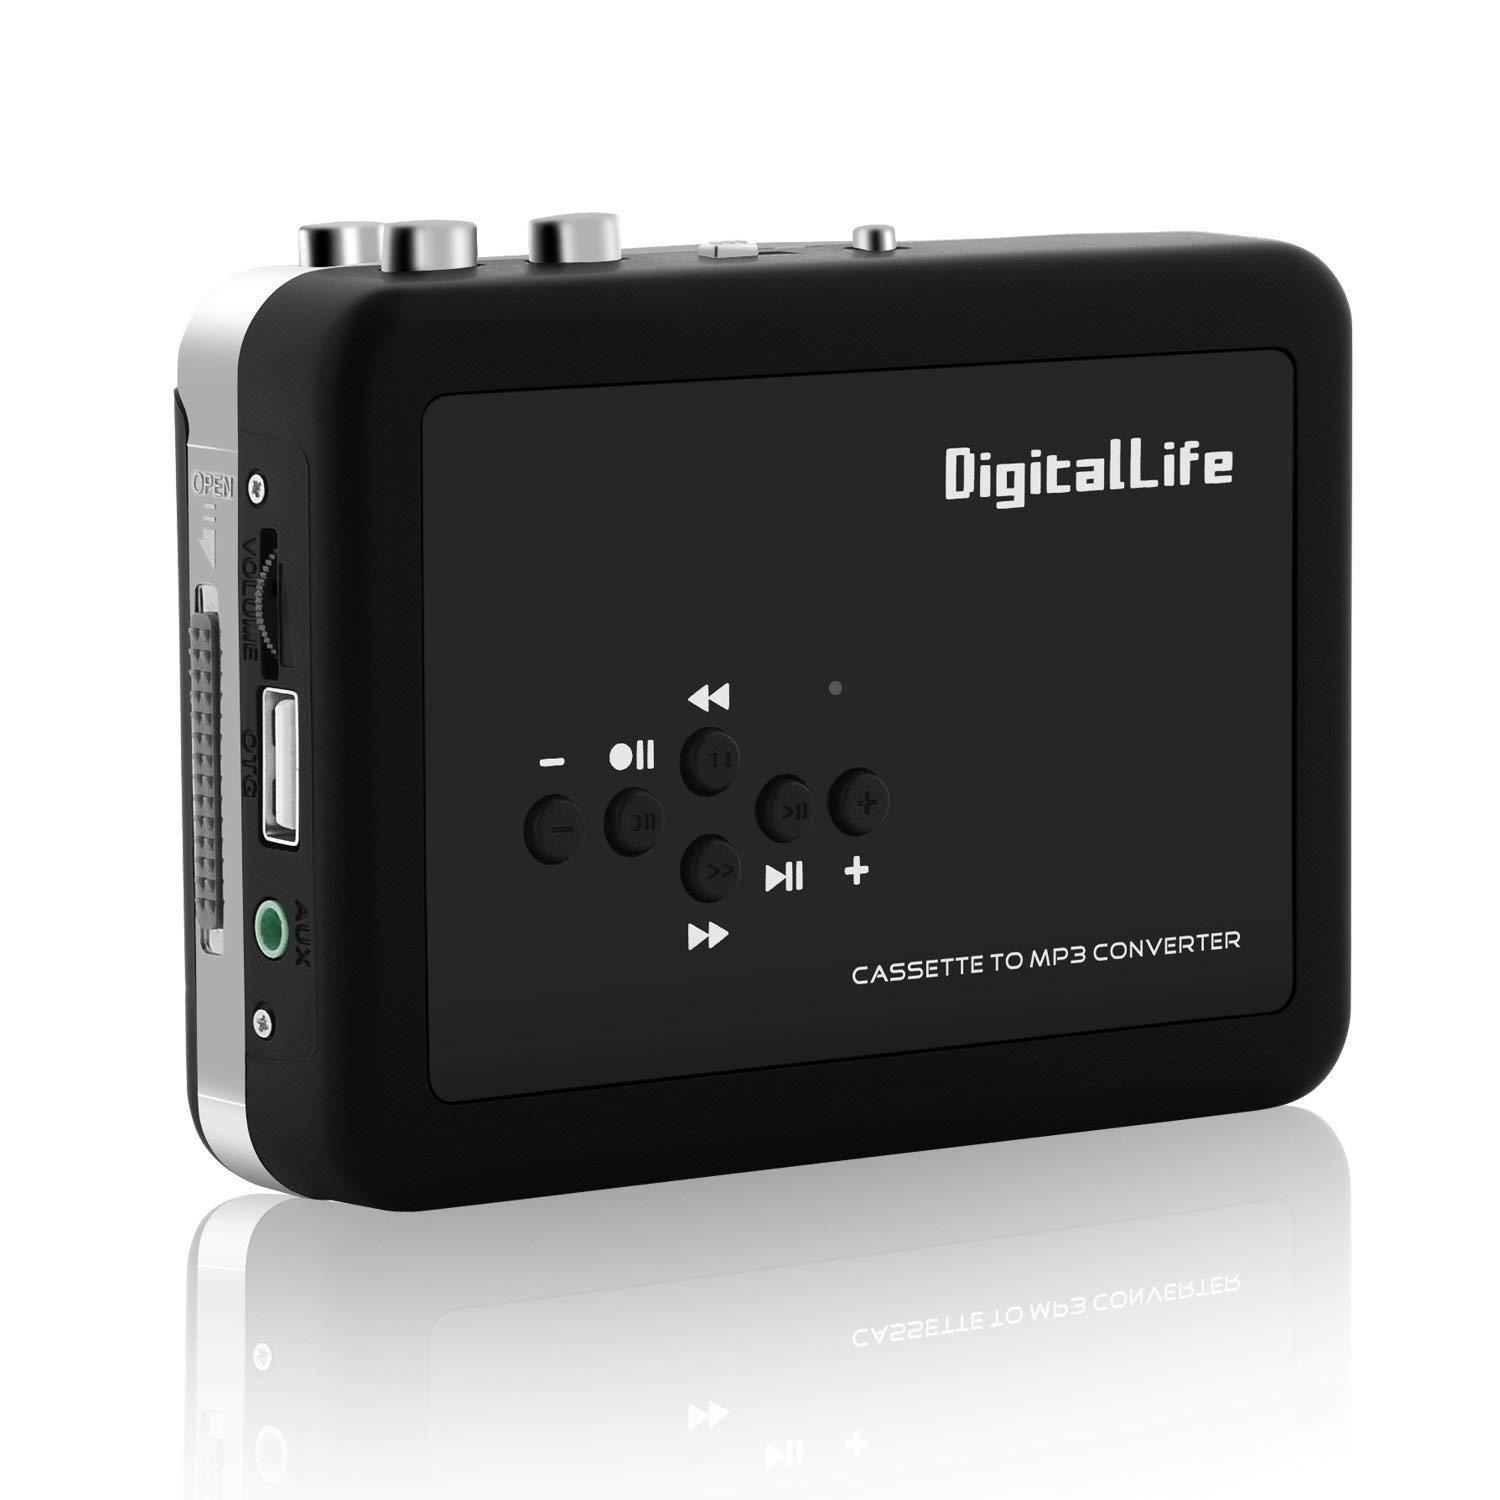 DigitalLife Cassette Player Recorder - Walkman Cassette Tapes to MP3 CD Converter via USB Flash Driver (Not Included), No need PC